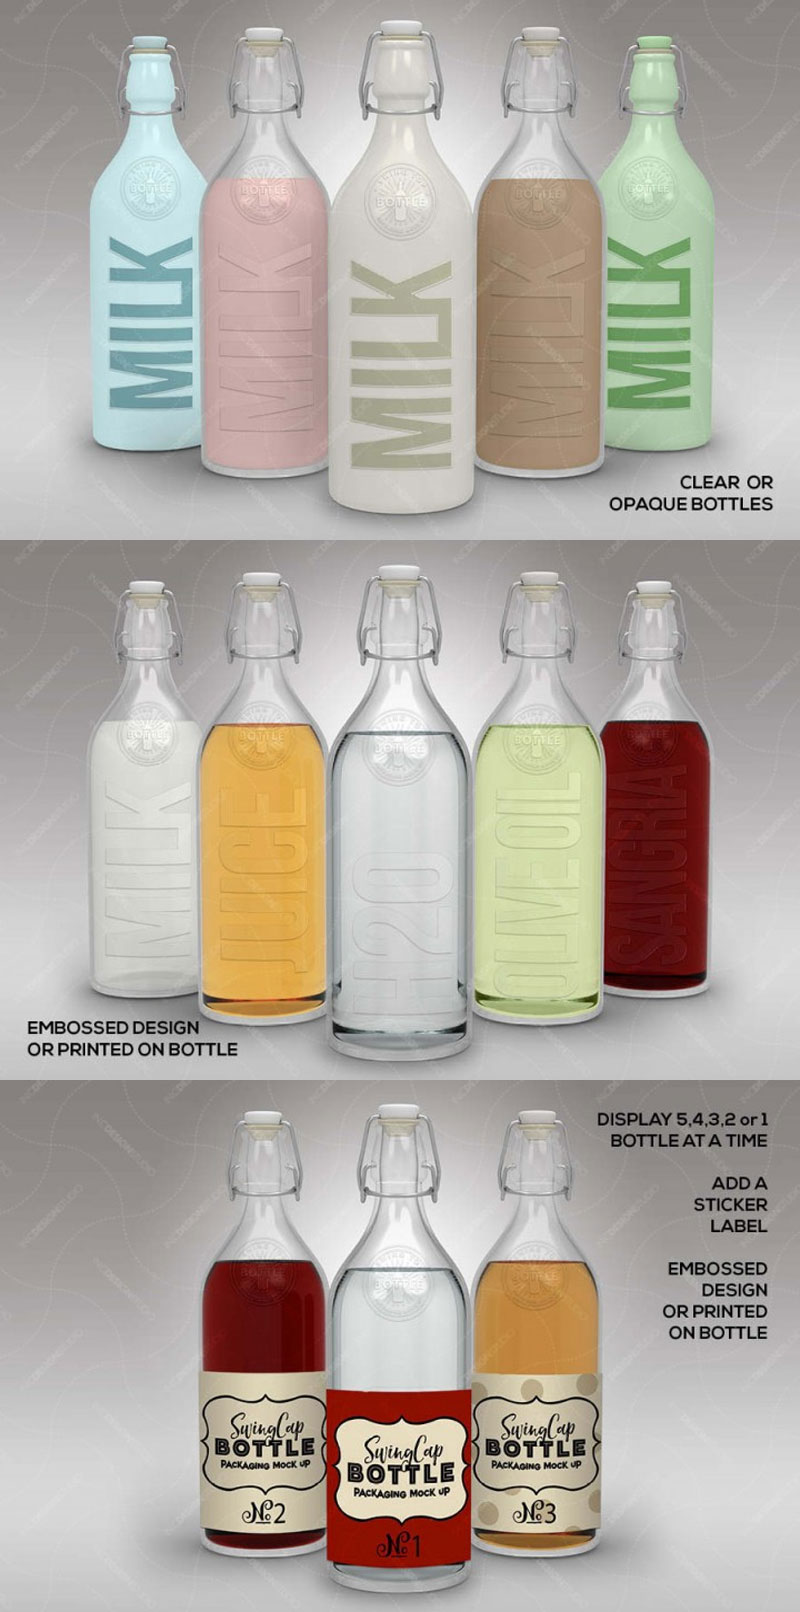 FREE-Bottle-Set-PSD-Mock-Up-Template